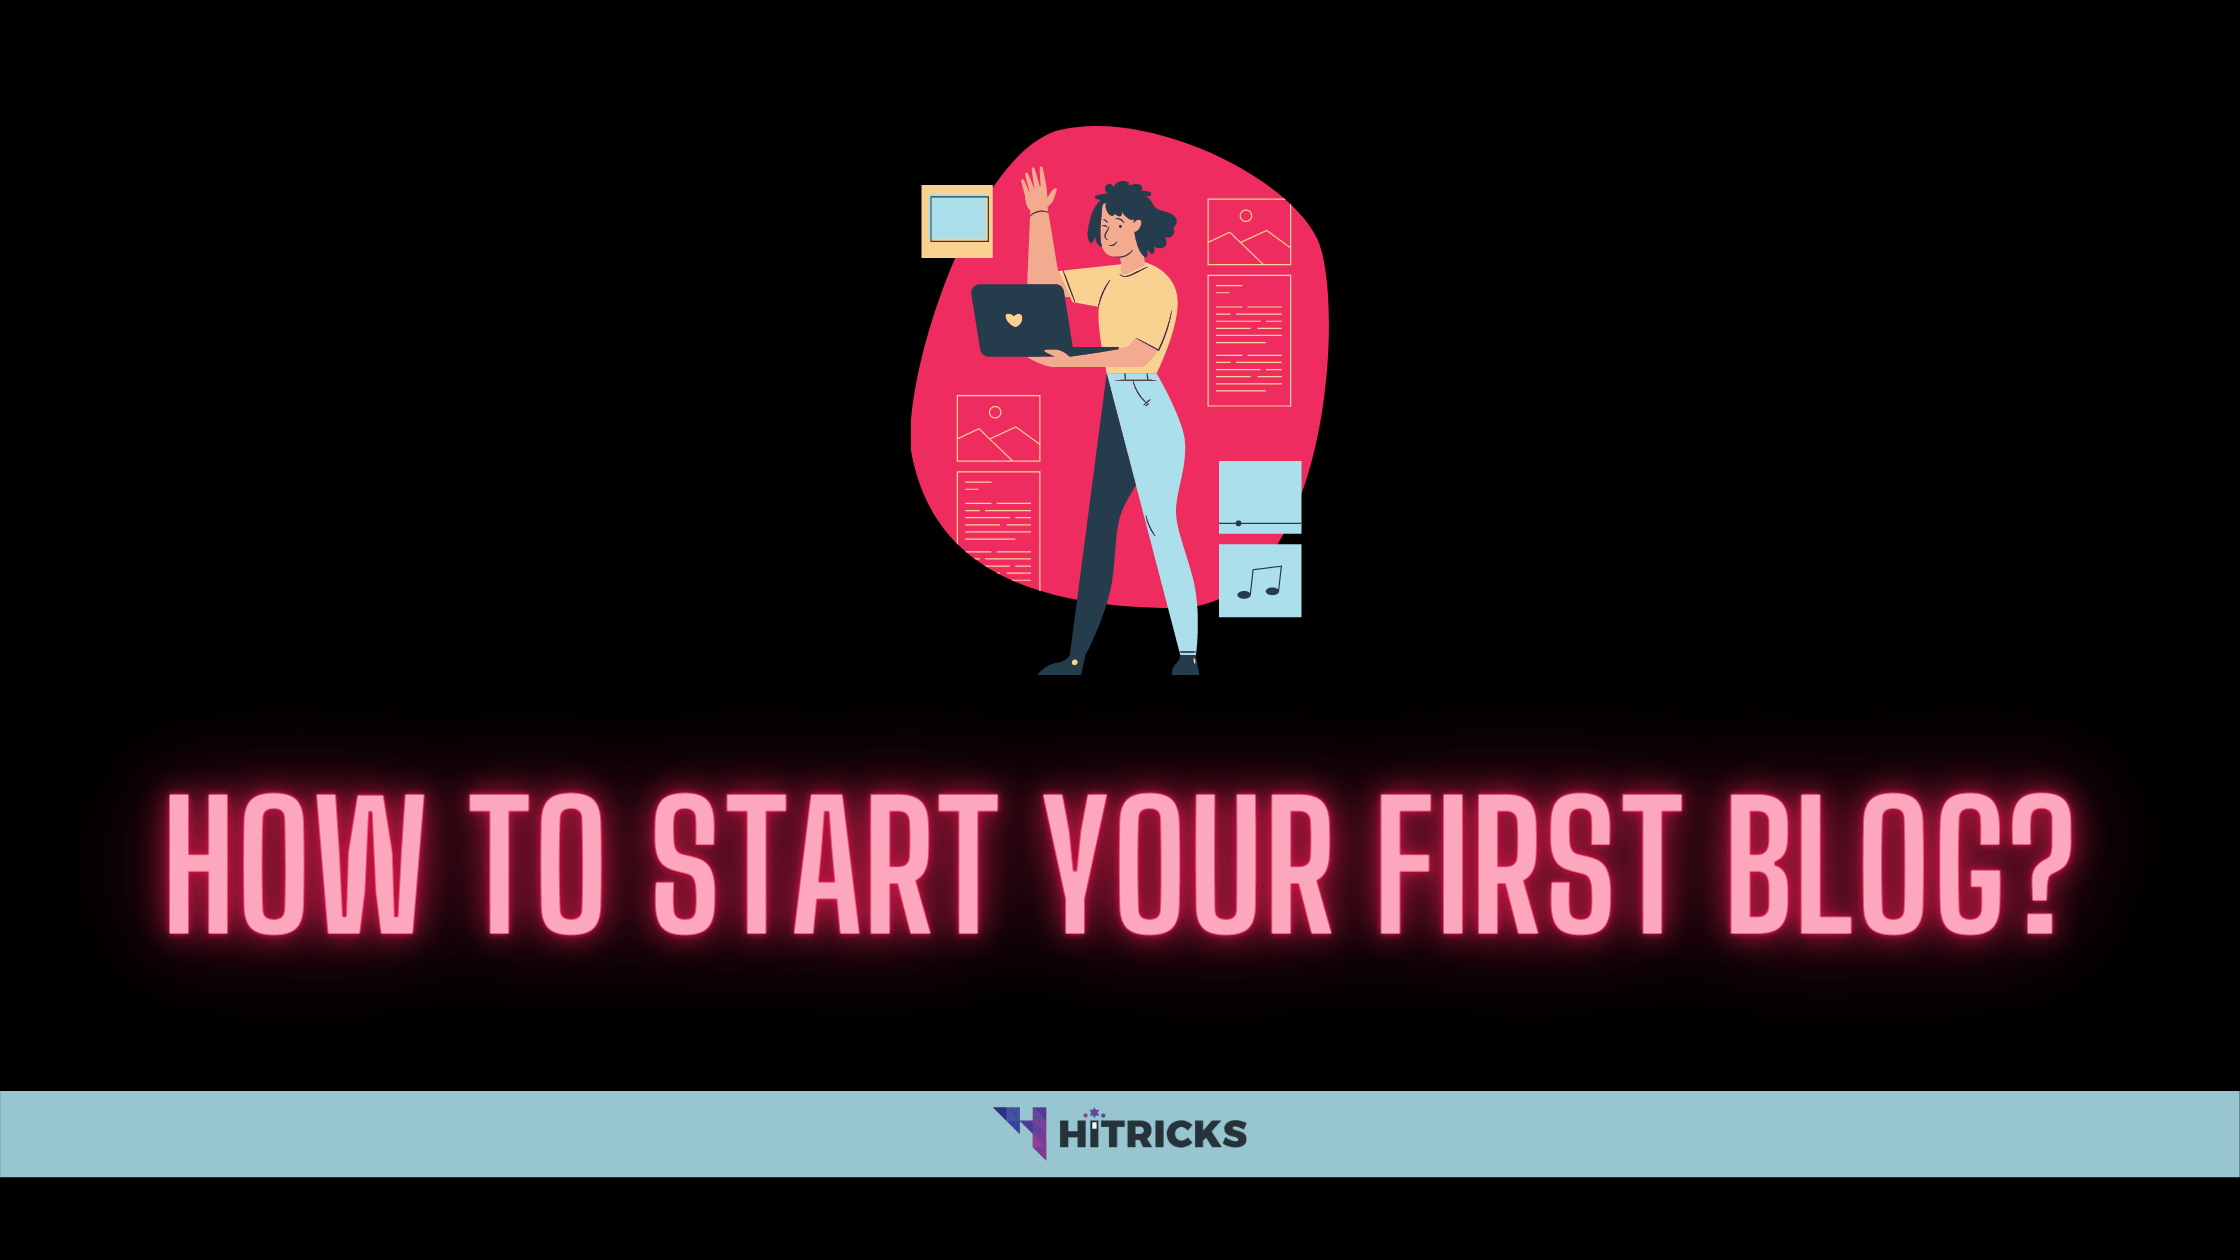 How to start your first blog?